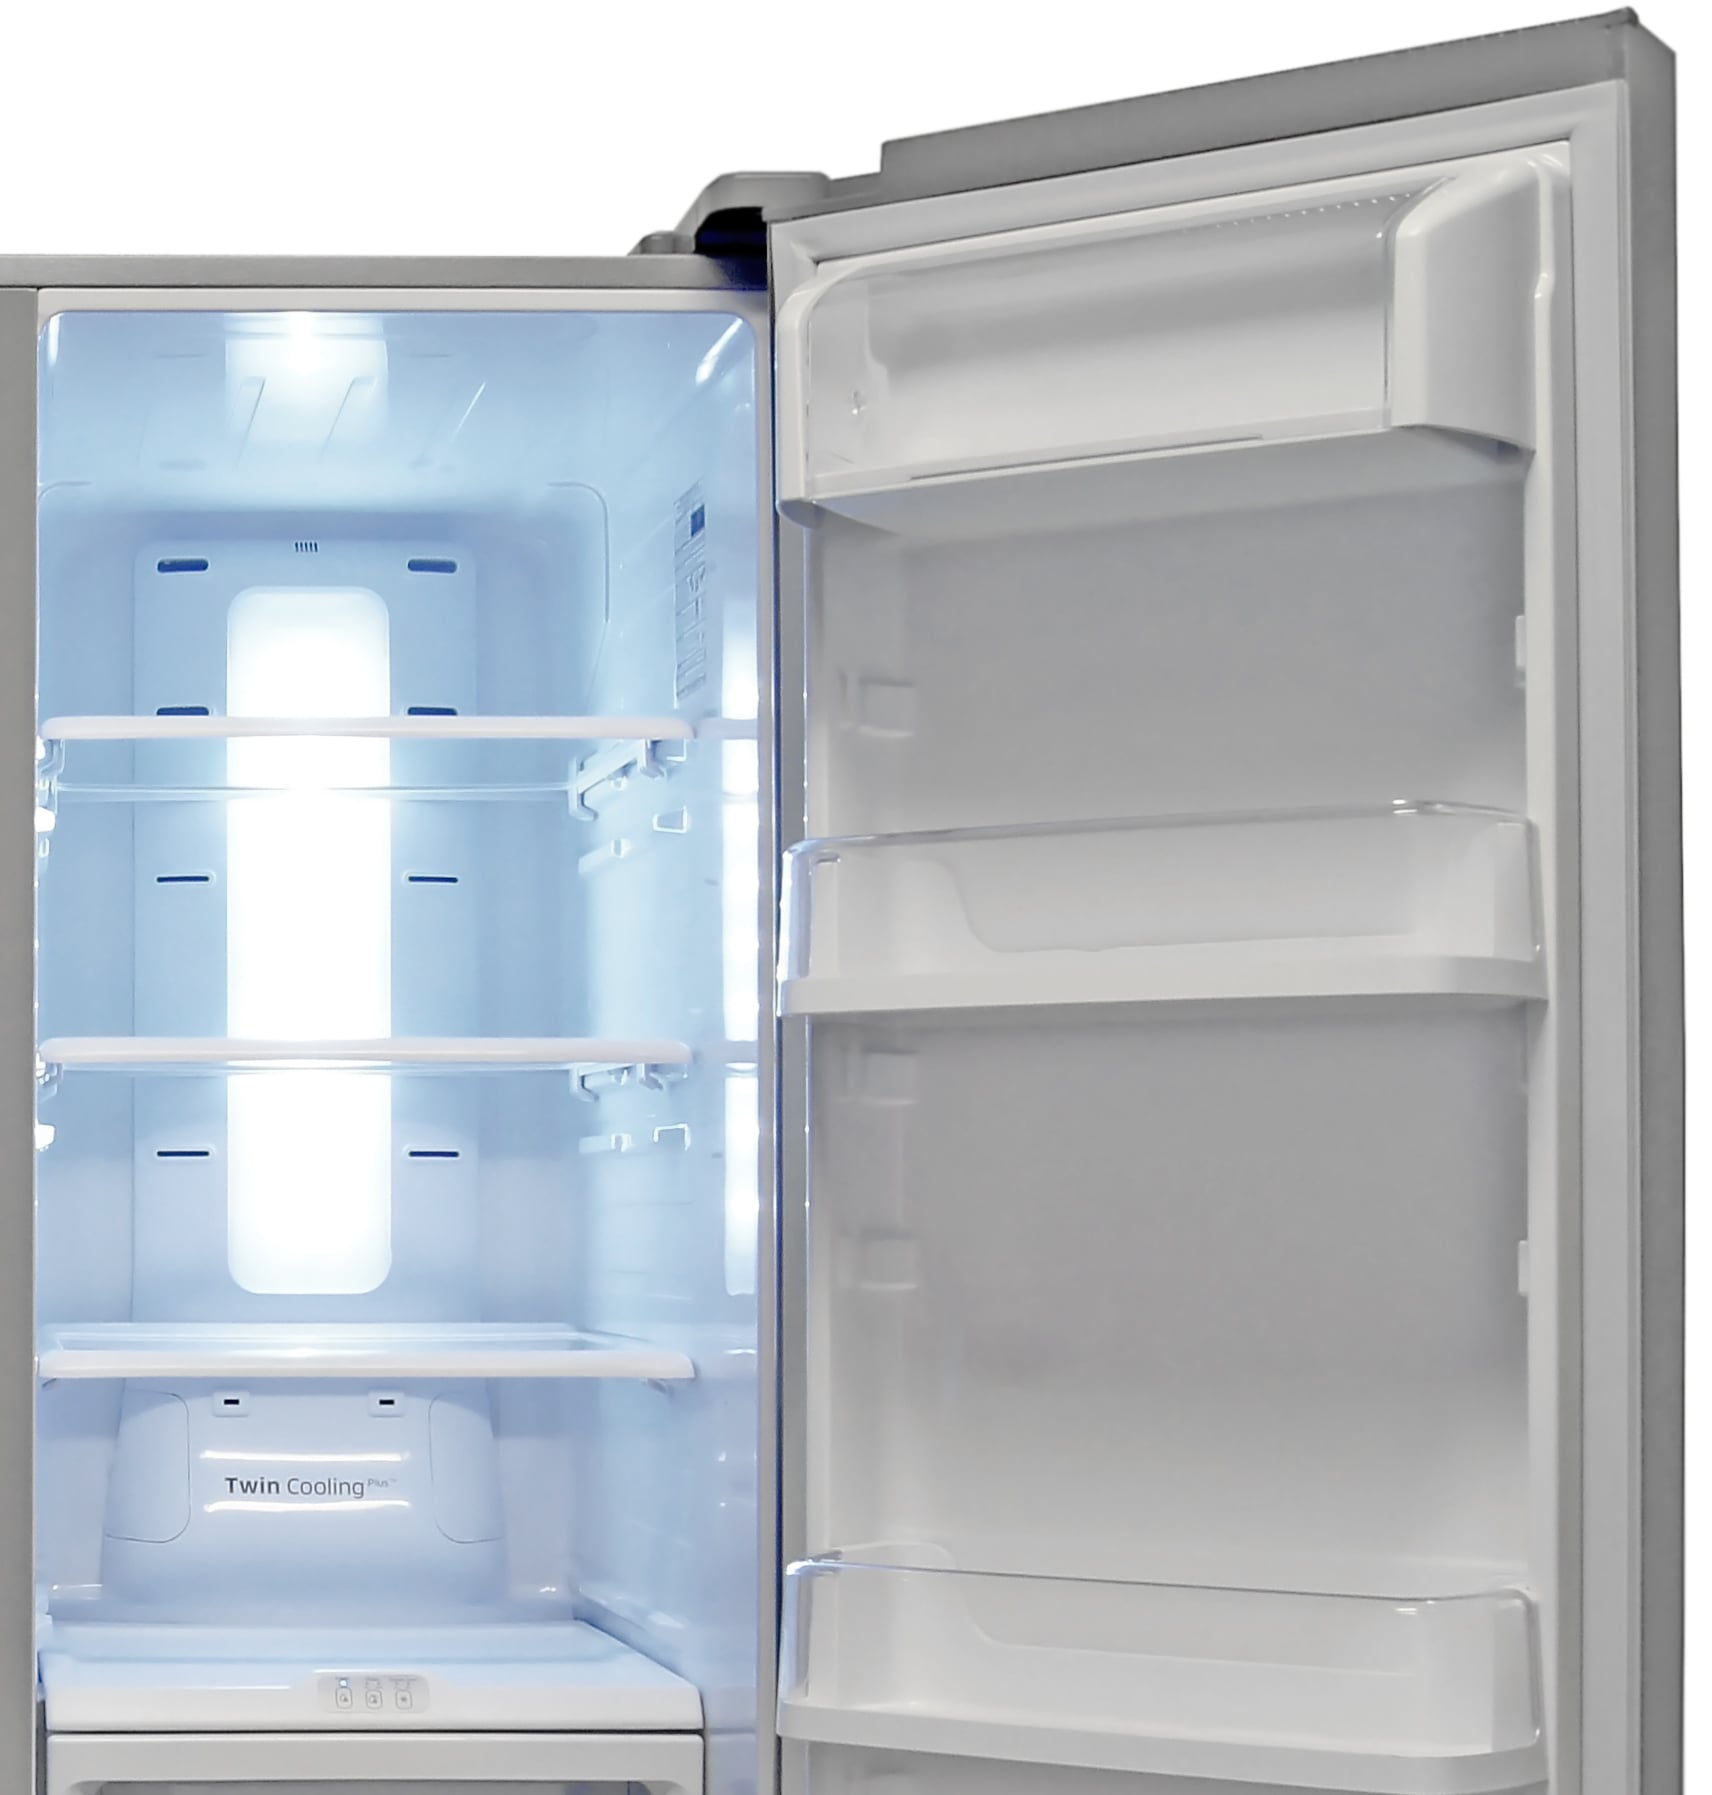 The Samsung RS25H5121SR's fridge compartment is exceptionally roomy.